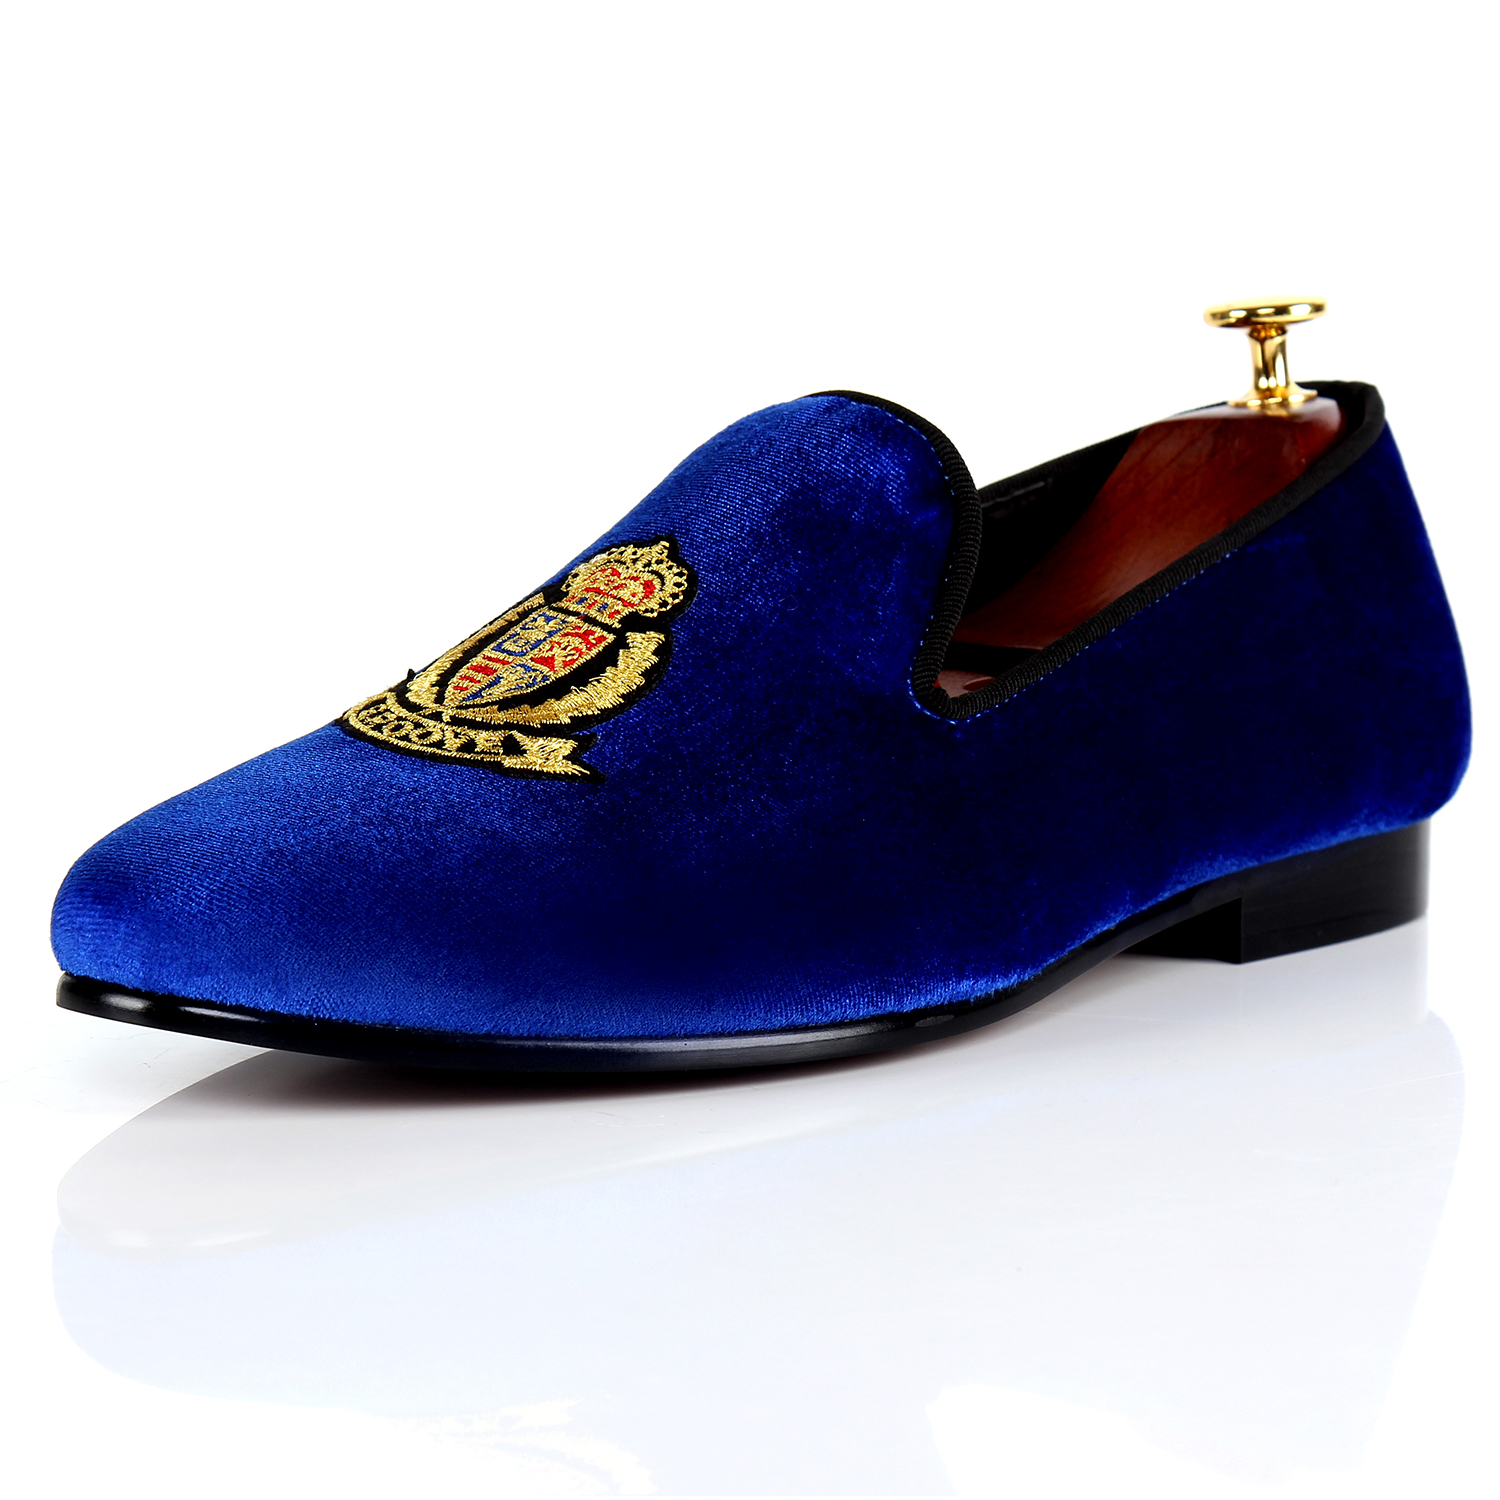 Harpelunde Slip On Men Formal Shoes Blue Motif Velvet Loafers Handmade Wedding Shoes Size 7-14 1w 78lm 7000k cool white light usb powered mini light emergency lamp blue